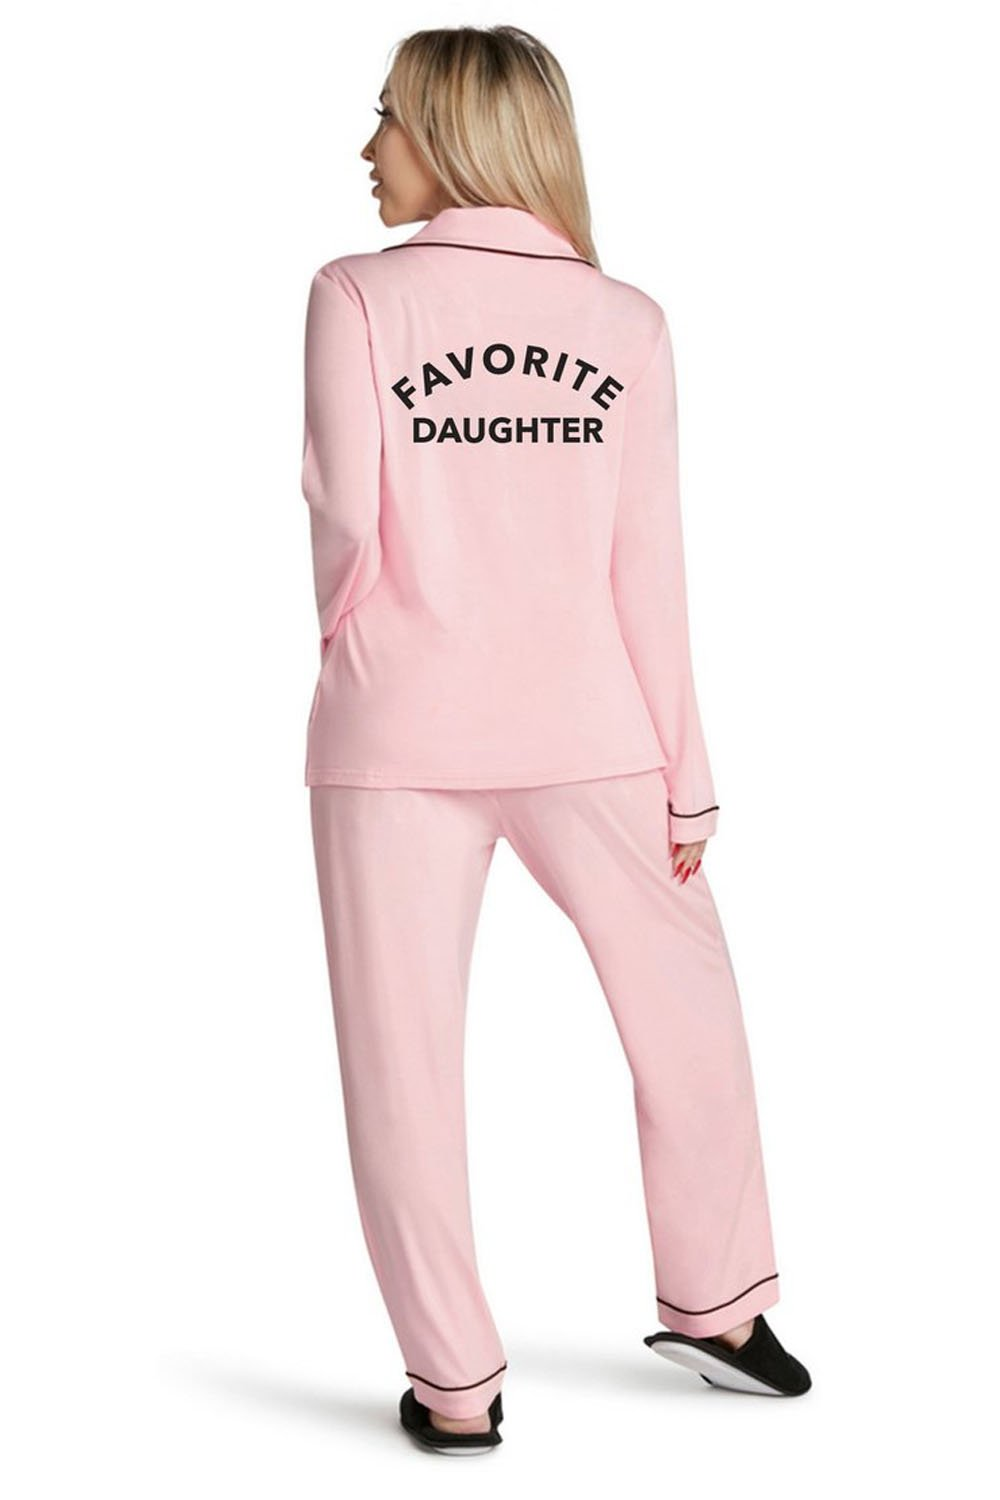 Lightweight Pink Pajama Set-Favorite Daughter